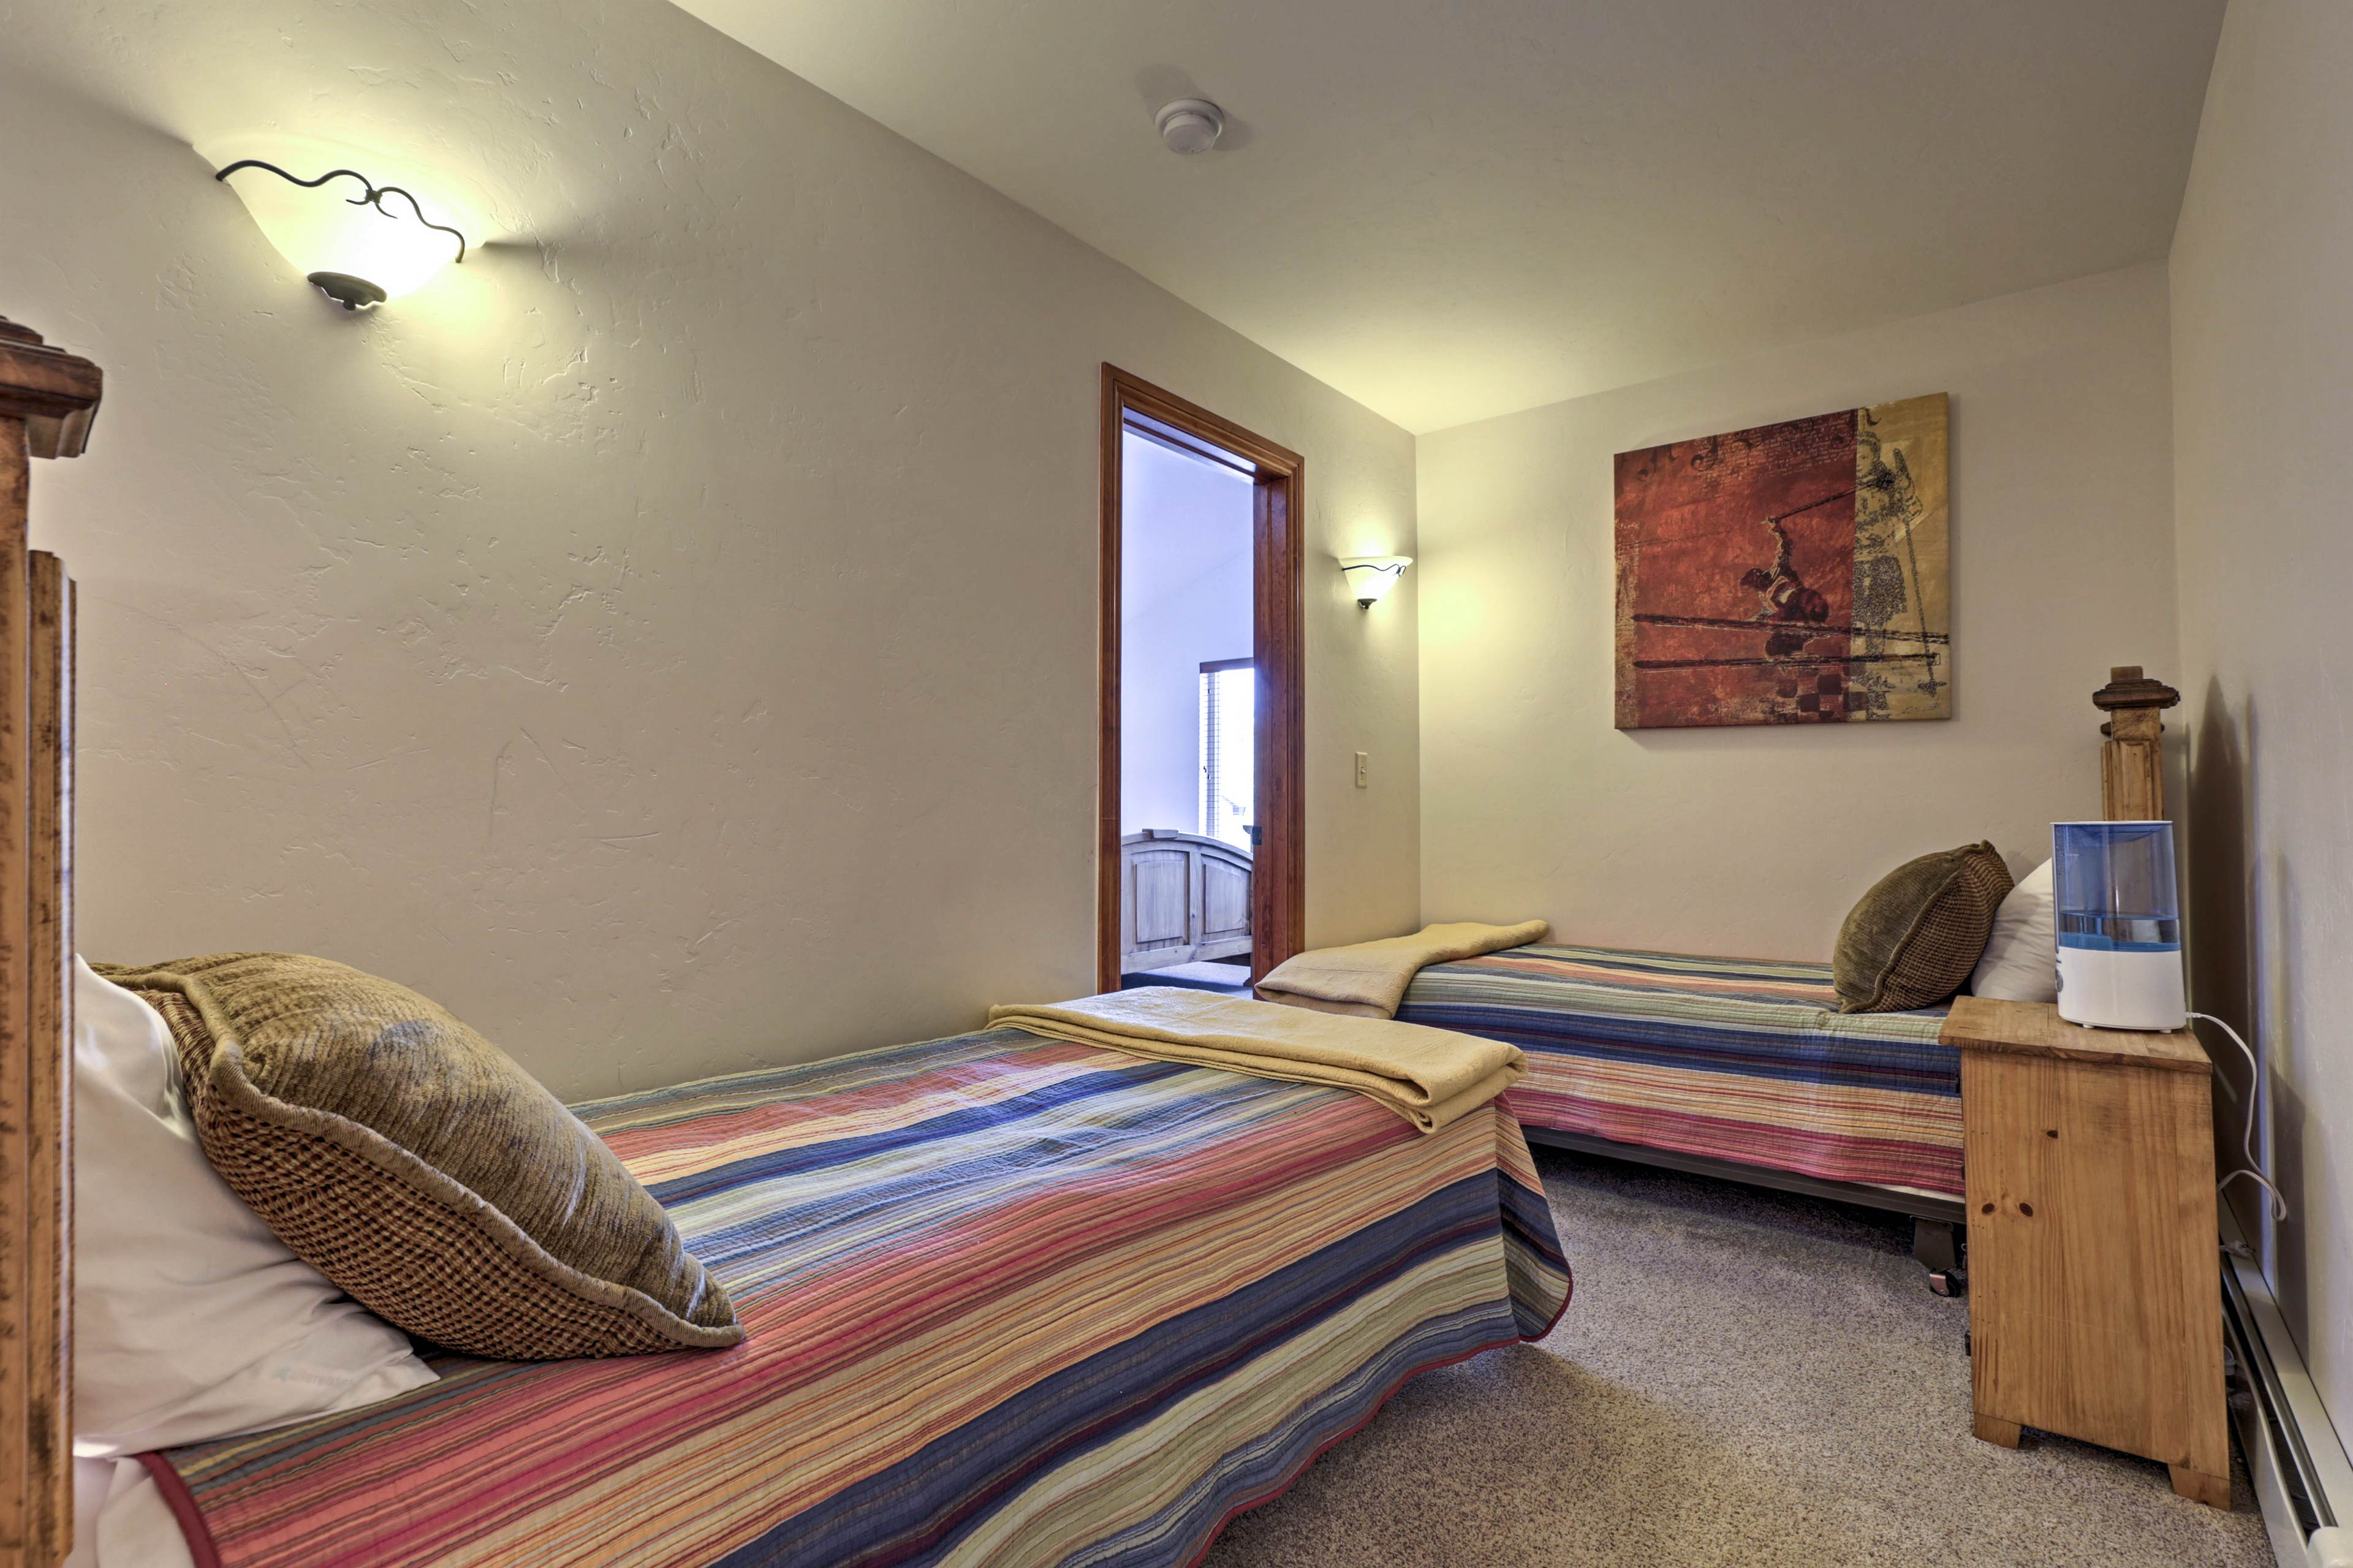 Additional sleeping for 2 is available in the loft.